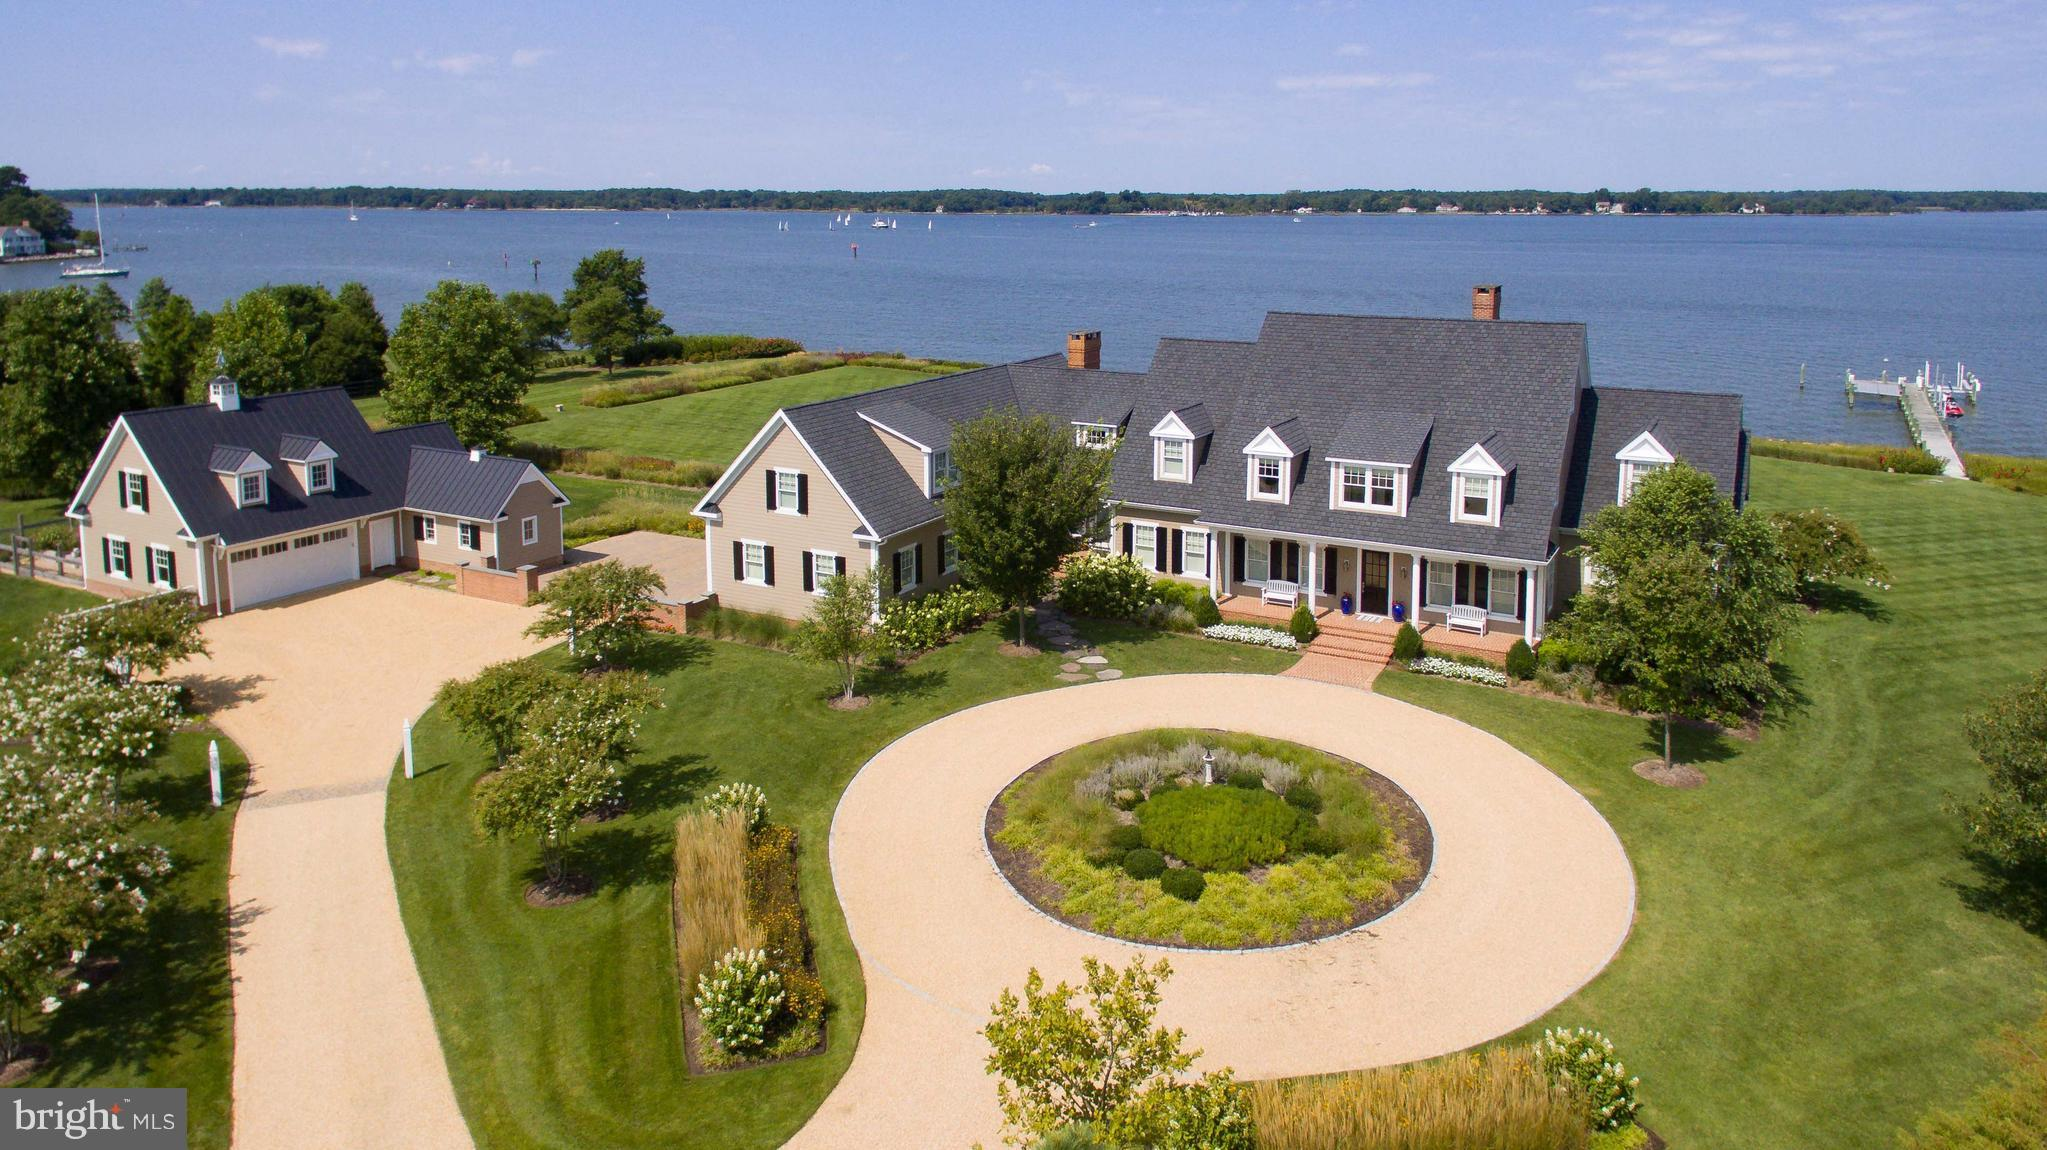 5385 MORGANS POINT DRIVE, OXFORD, MD 21654